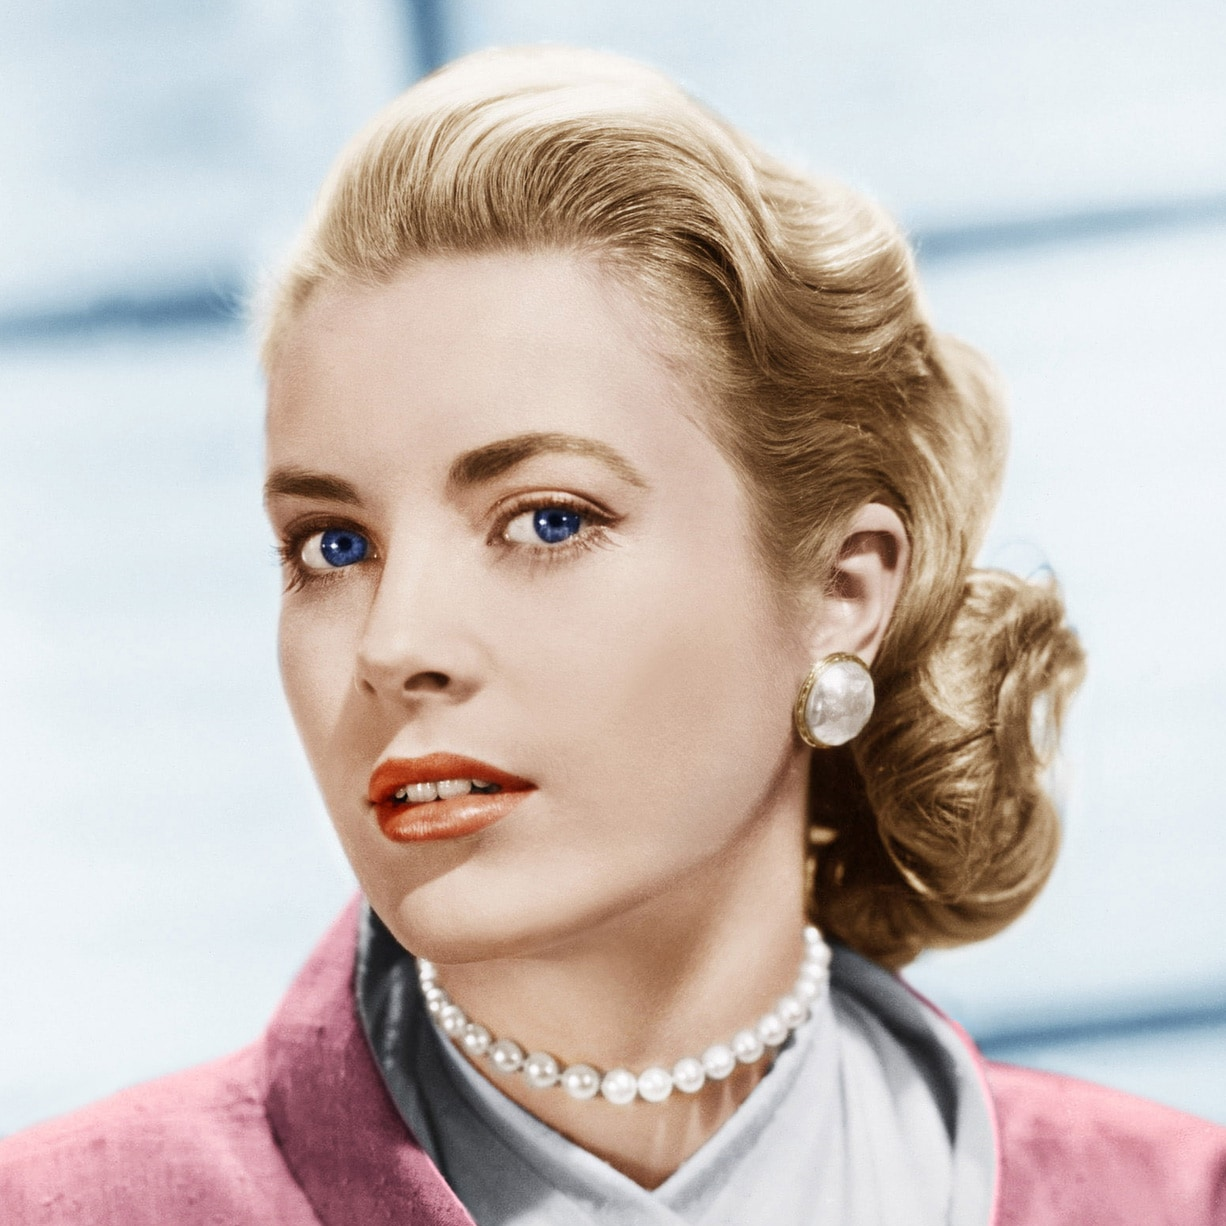 grace kelly 's natural